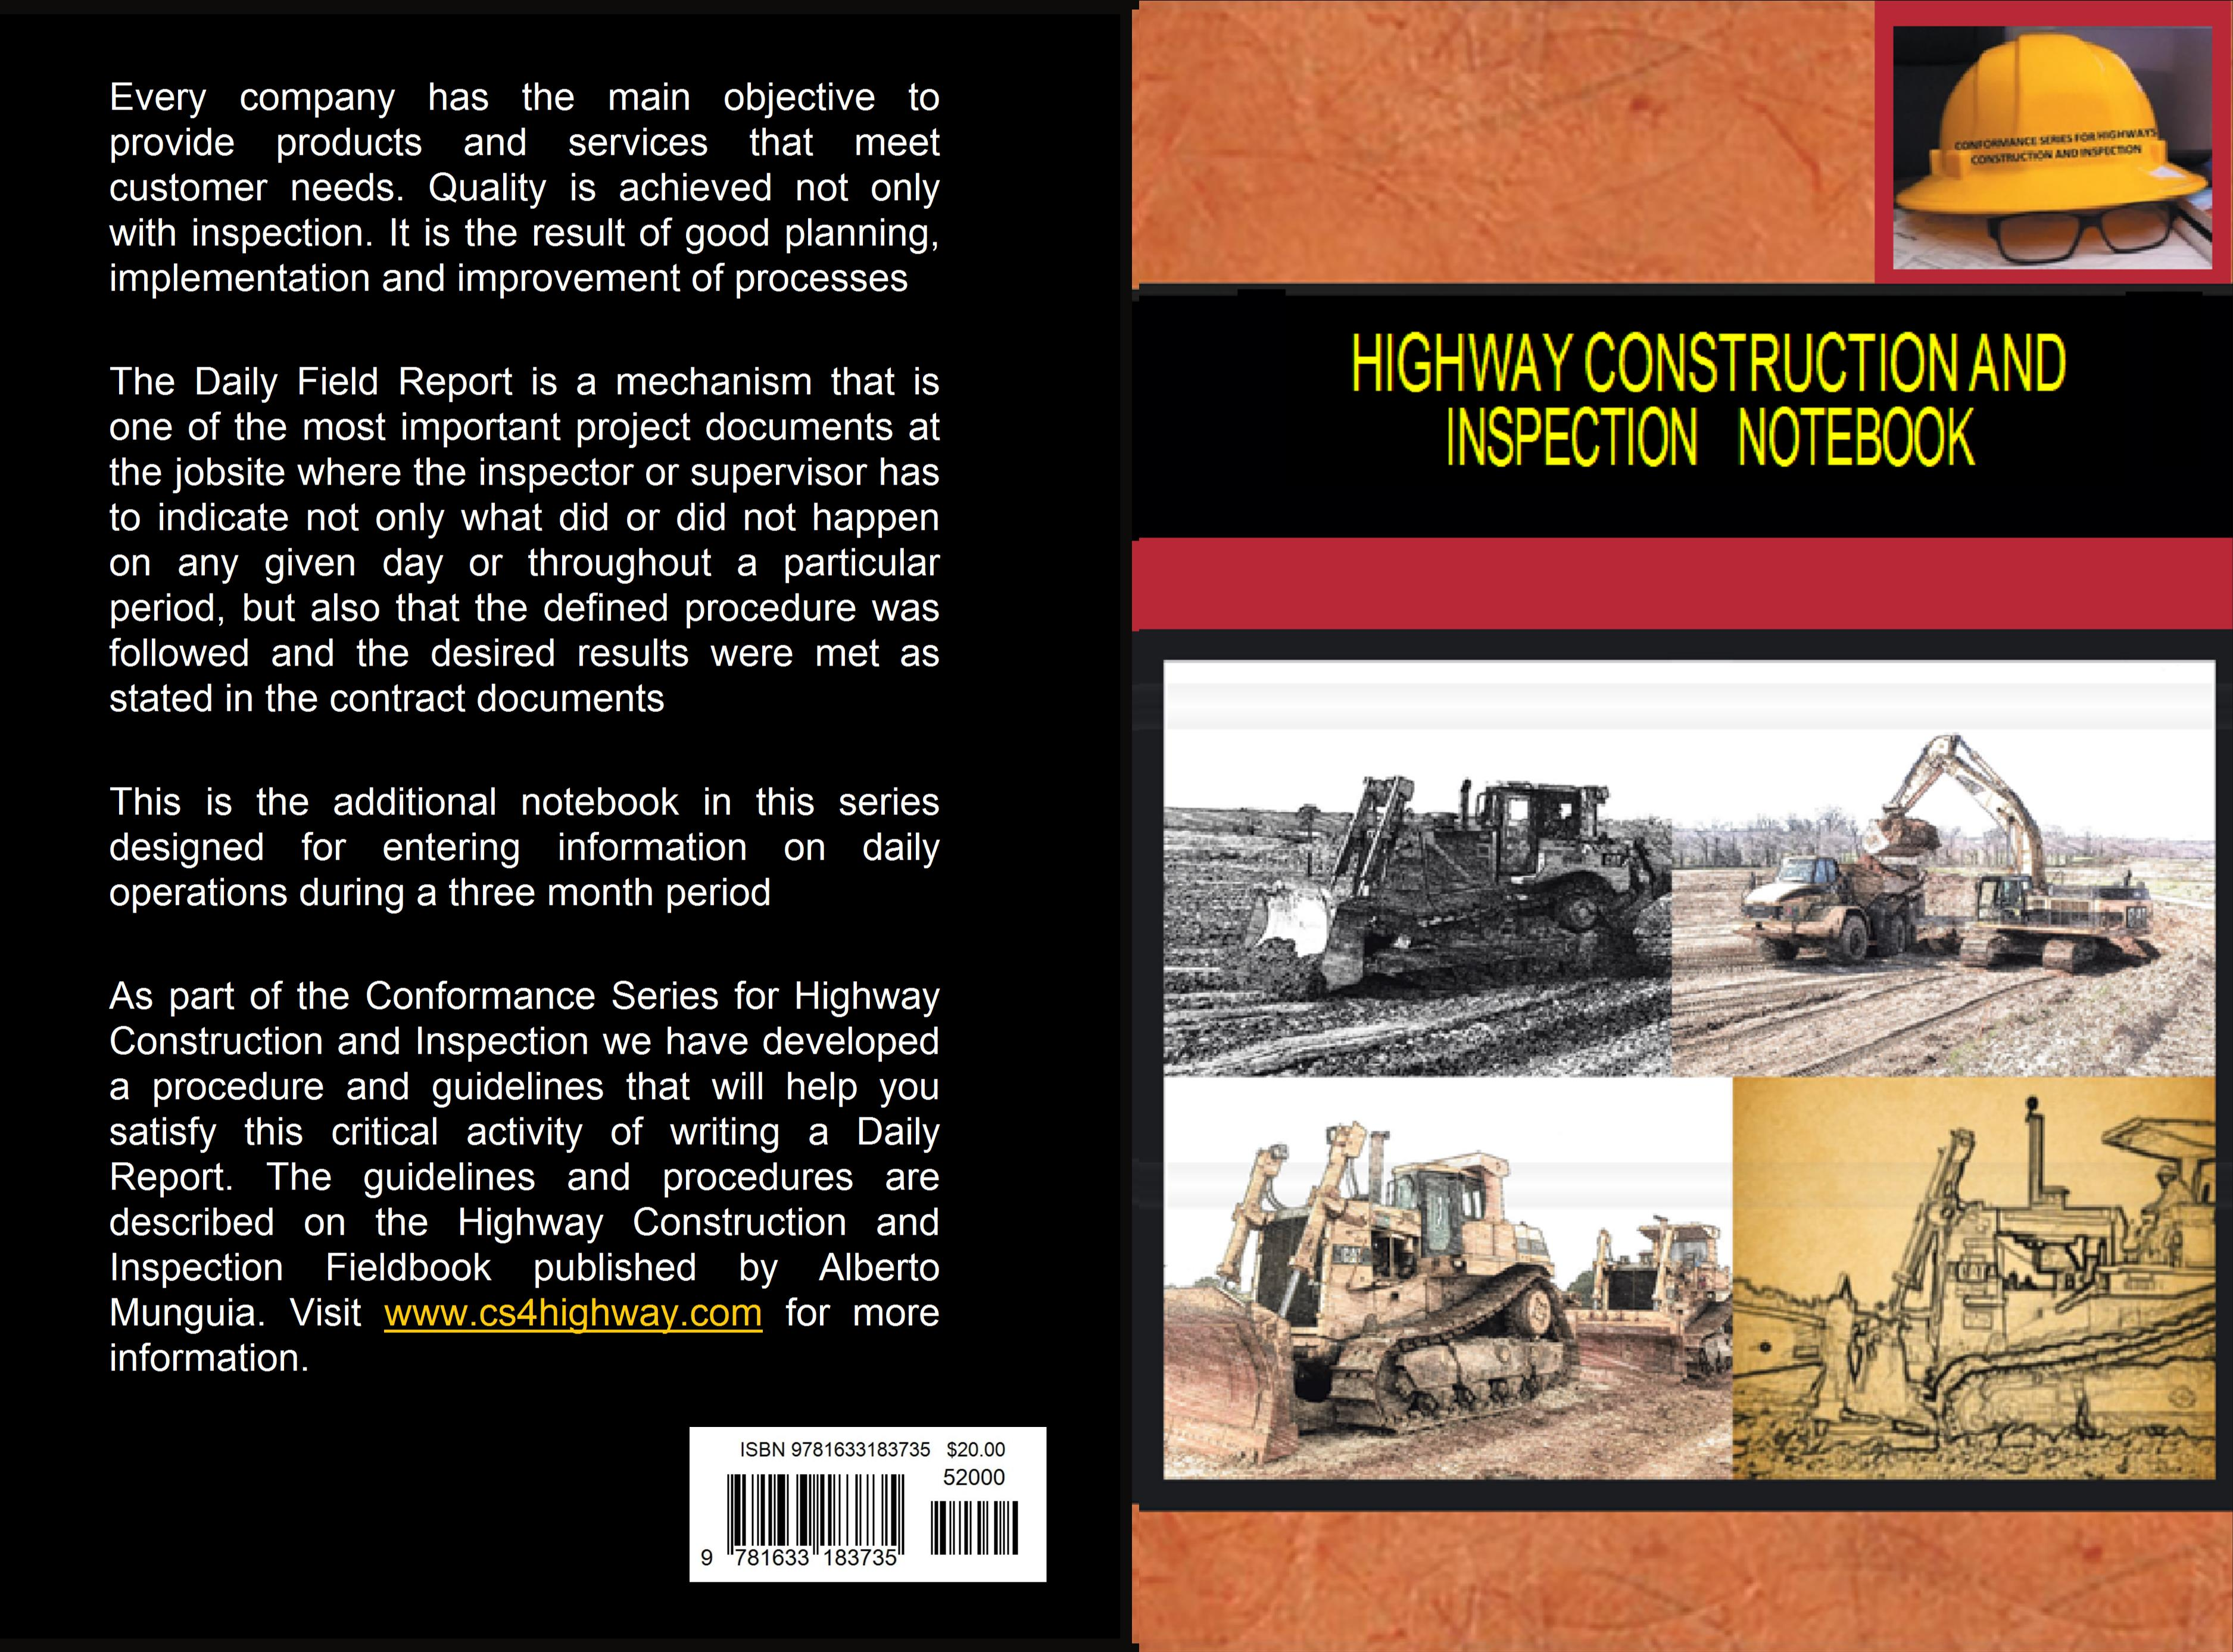 Highway Construction and Inspection Notebook cover image